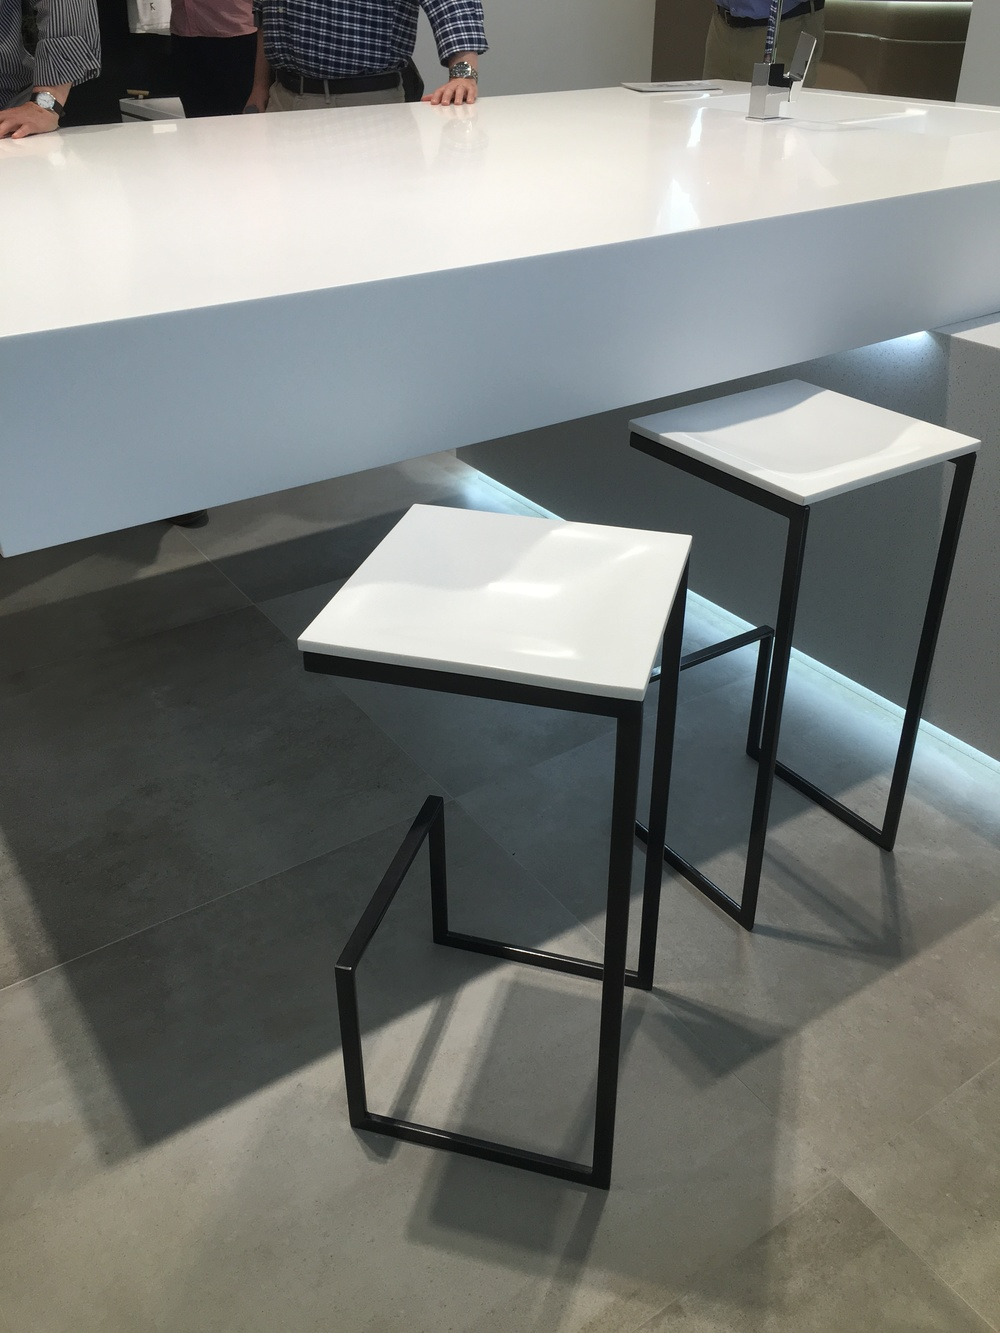 Krion stool tops